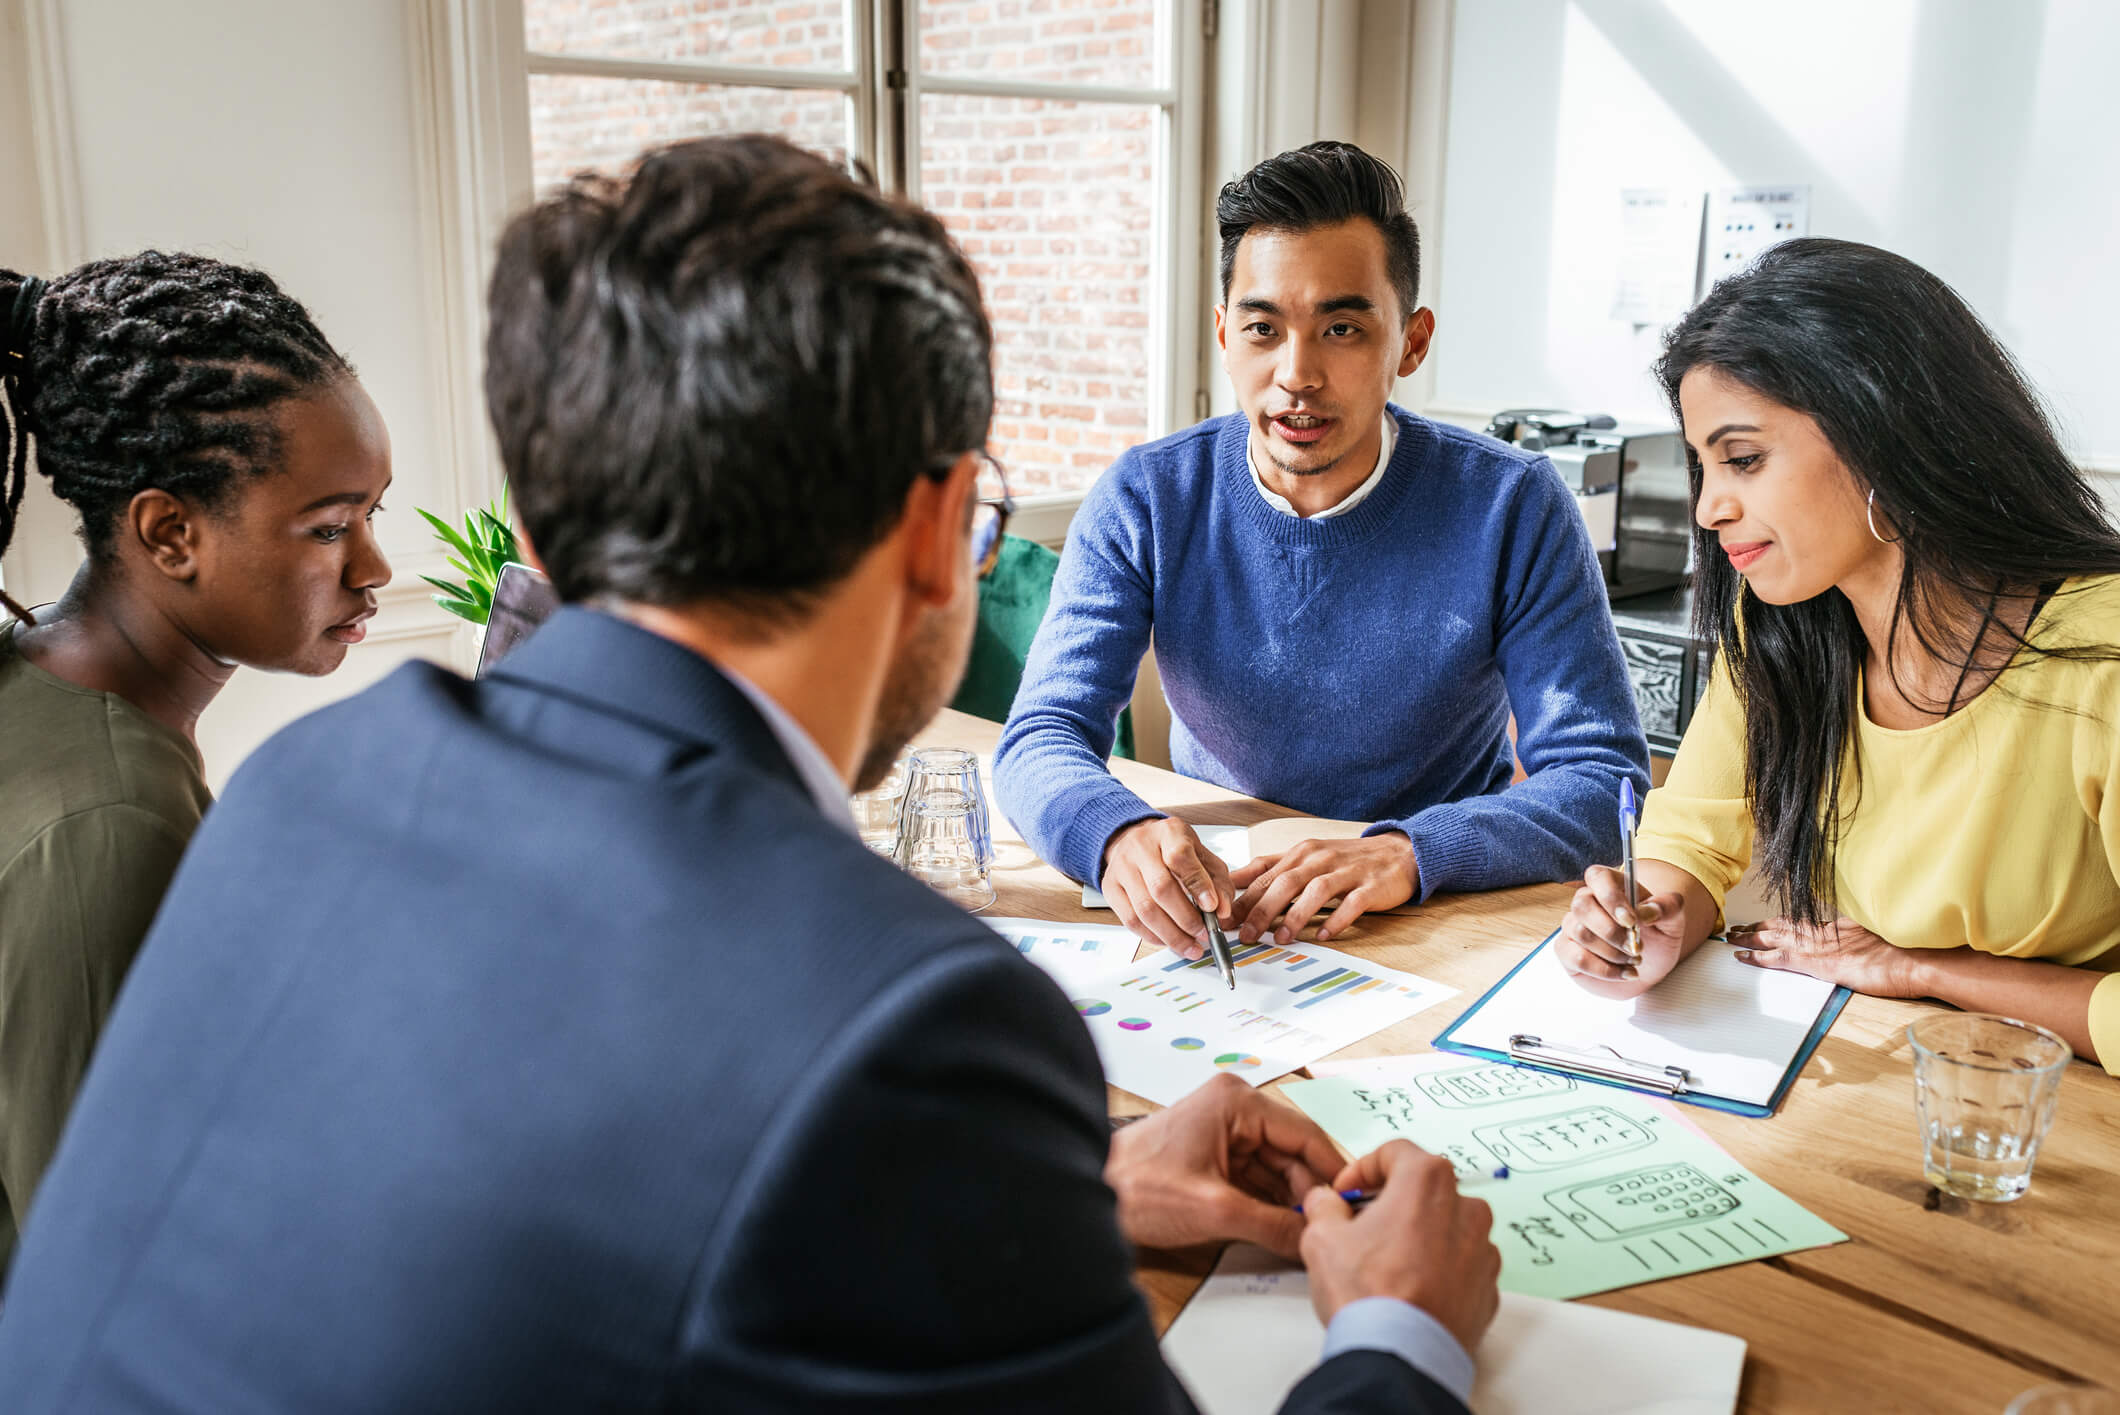 dealing with conflict in a cross-cultural meeting